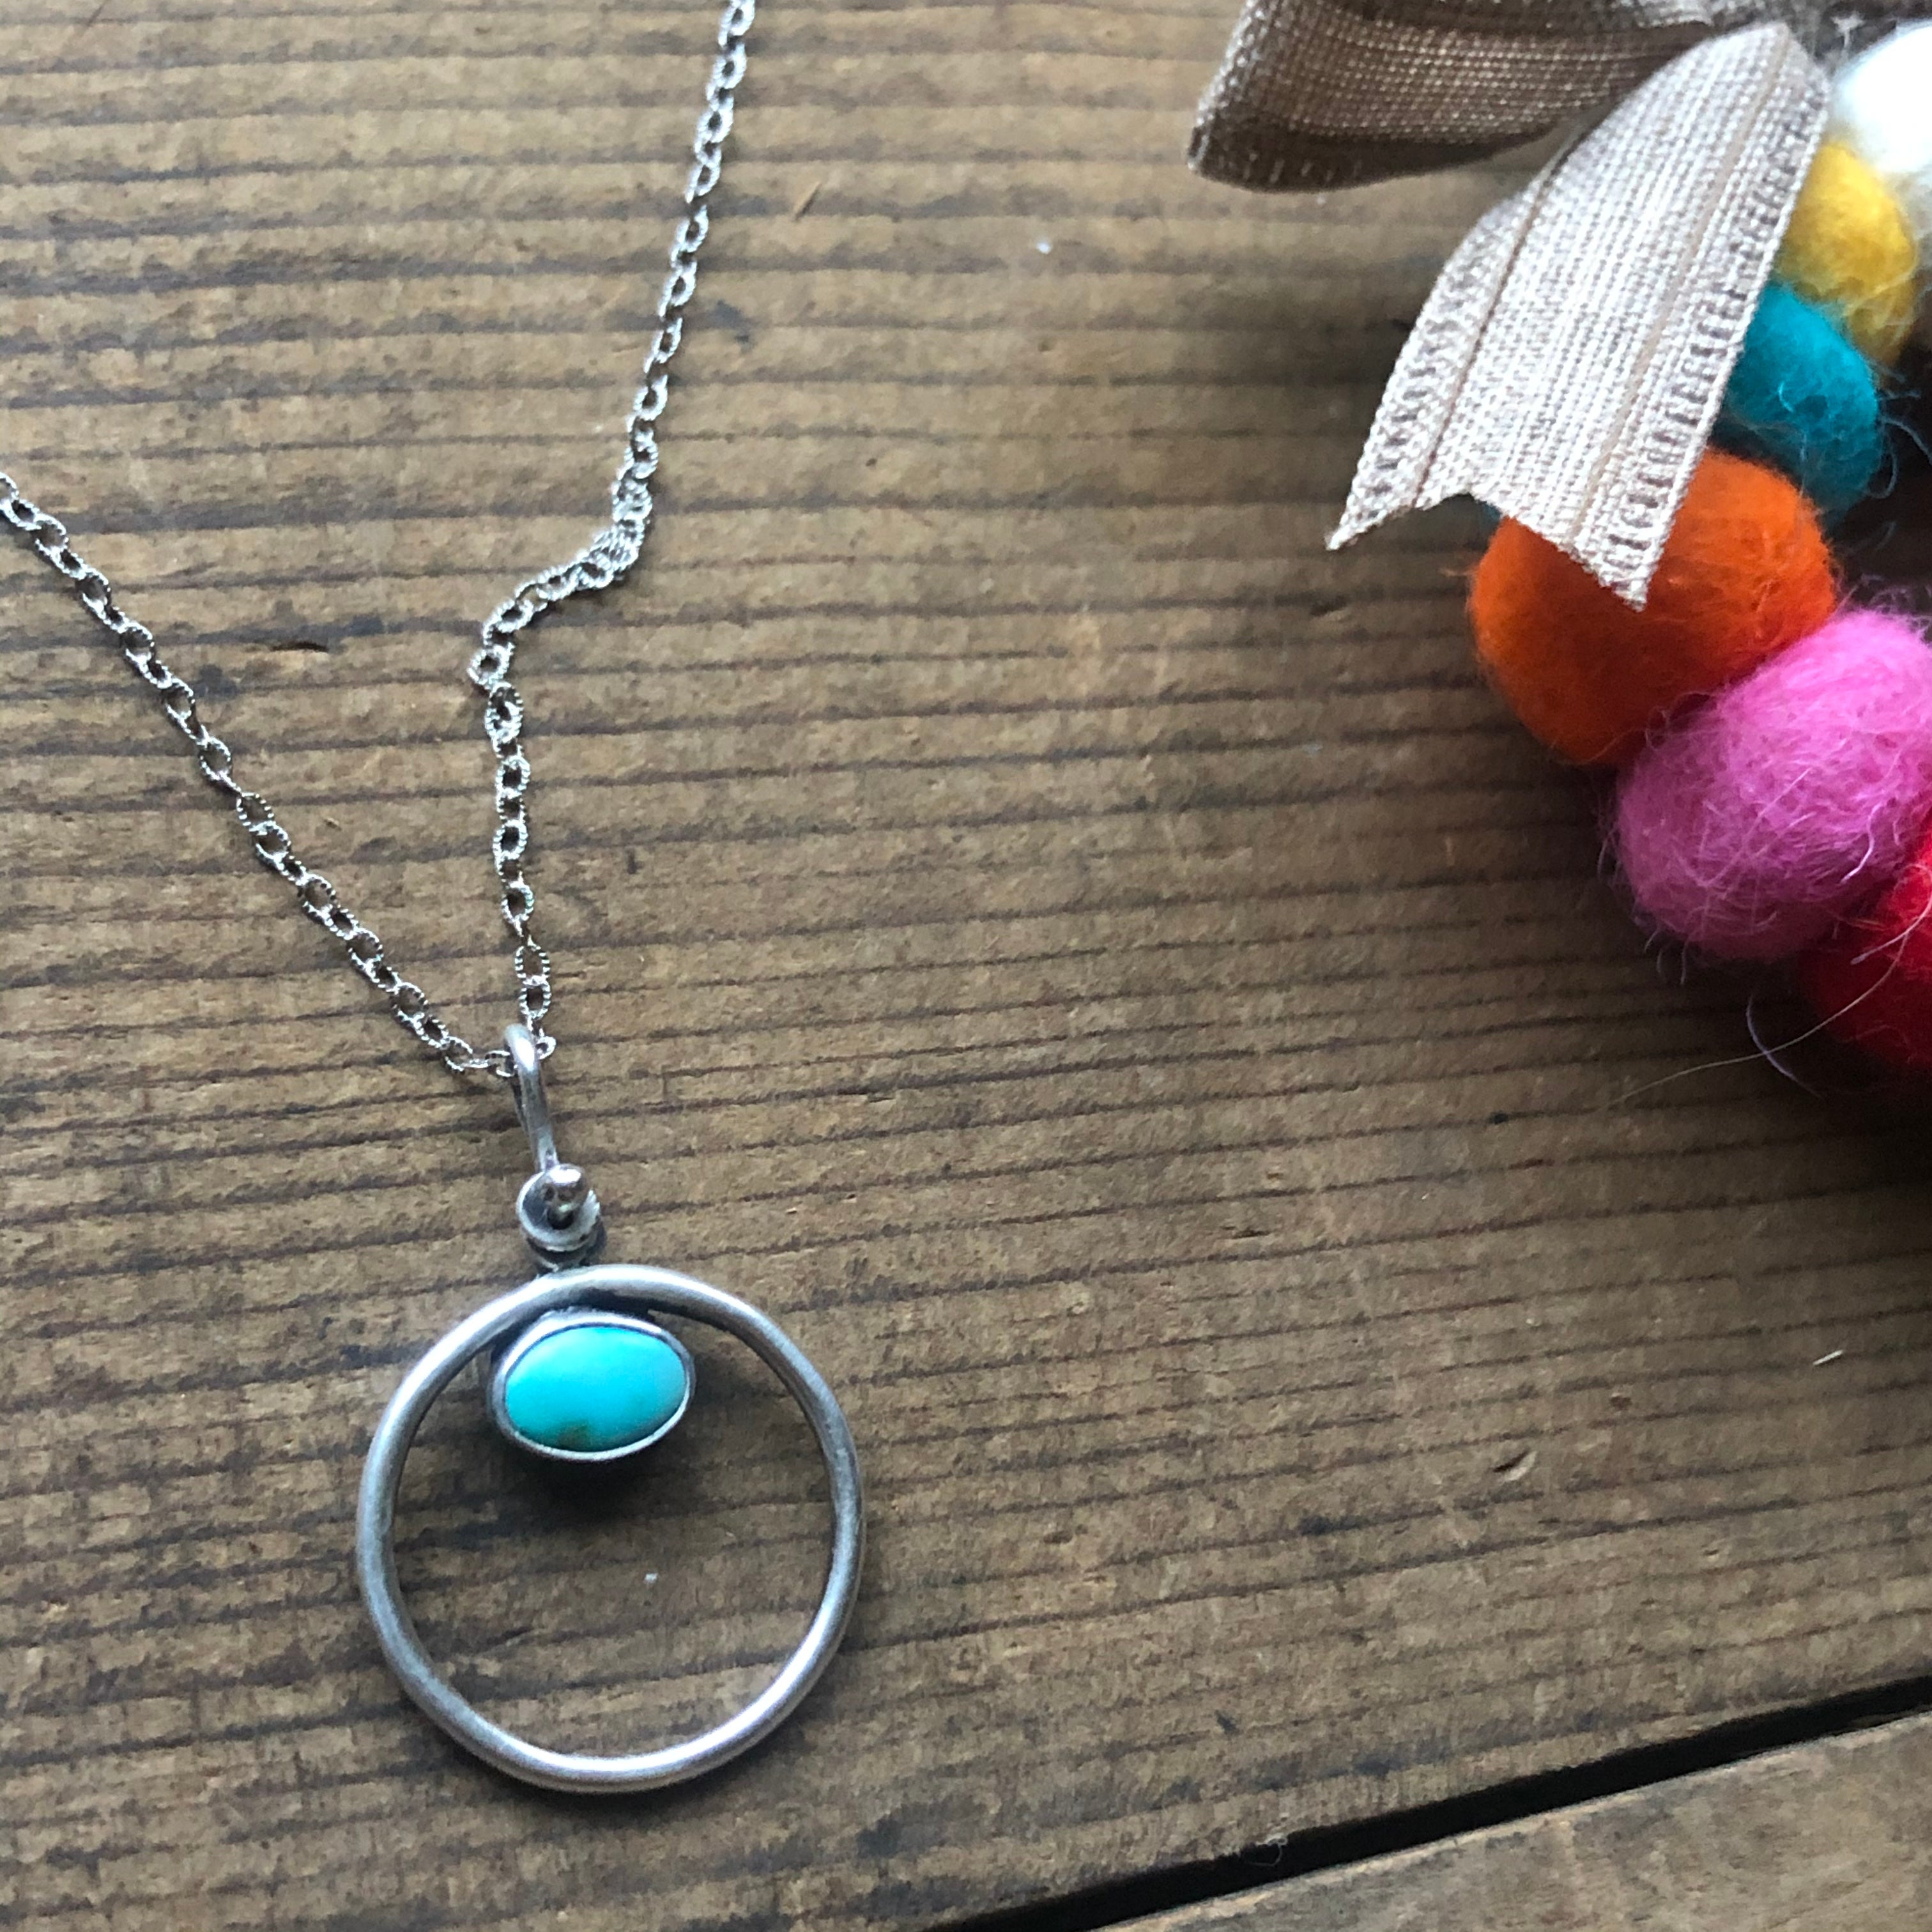 Just absolutely stunning double sided Carico Lake turquoise pendant with a solid sterling silver bail